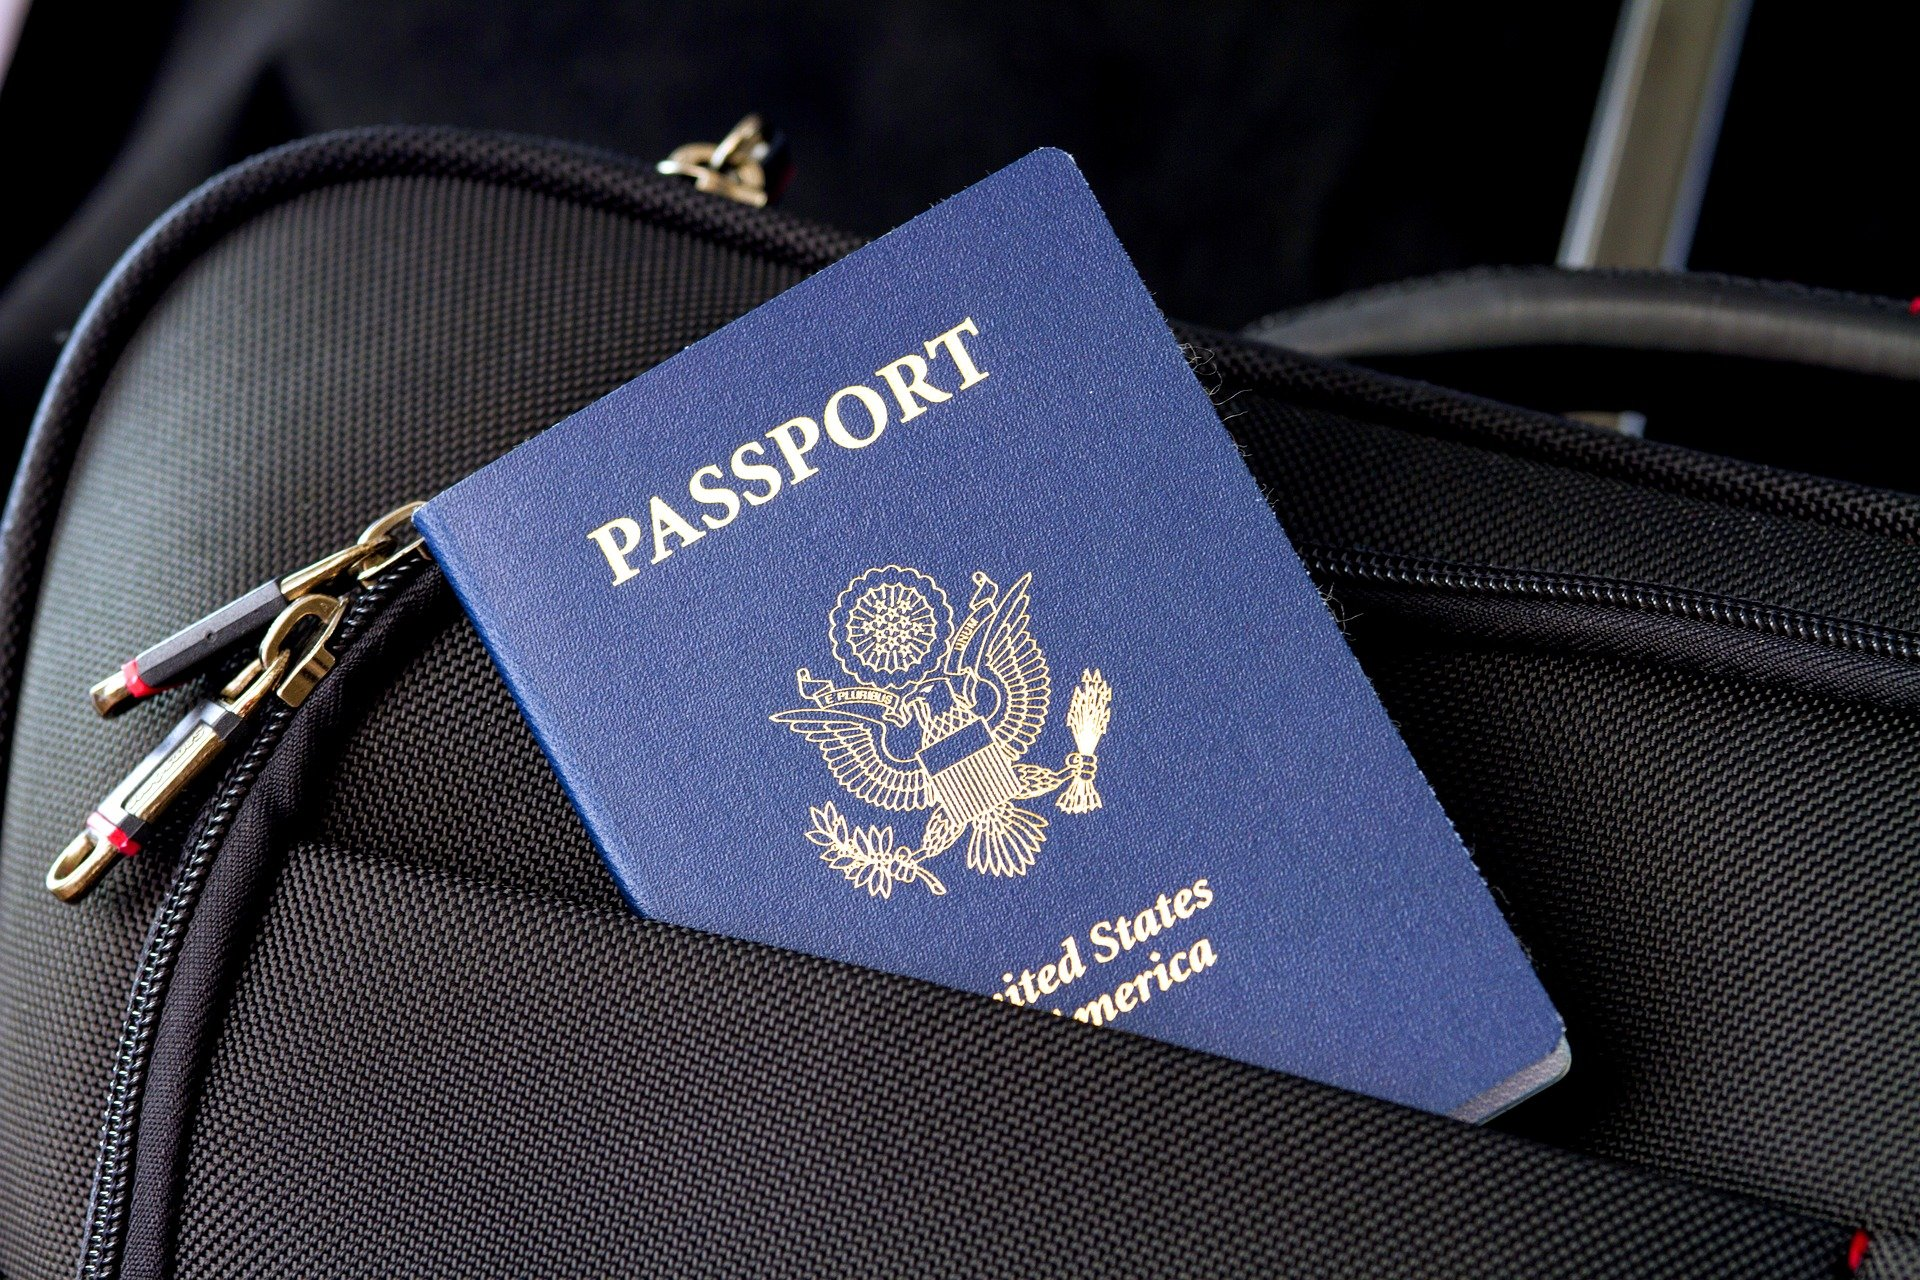 5 Reasons to Consider Keeping Your Old, Expired Passport